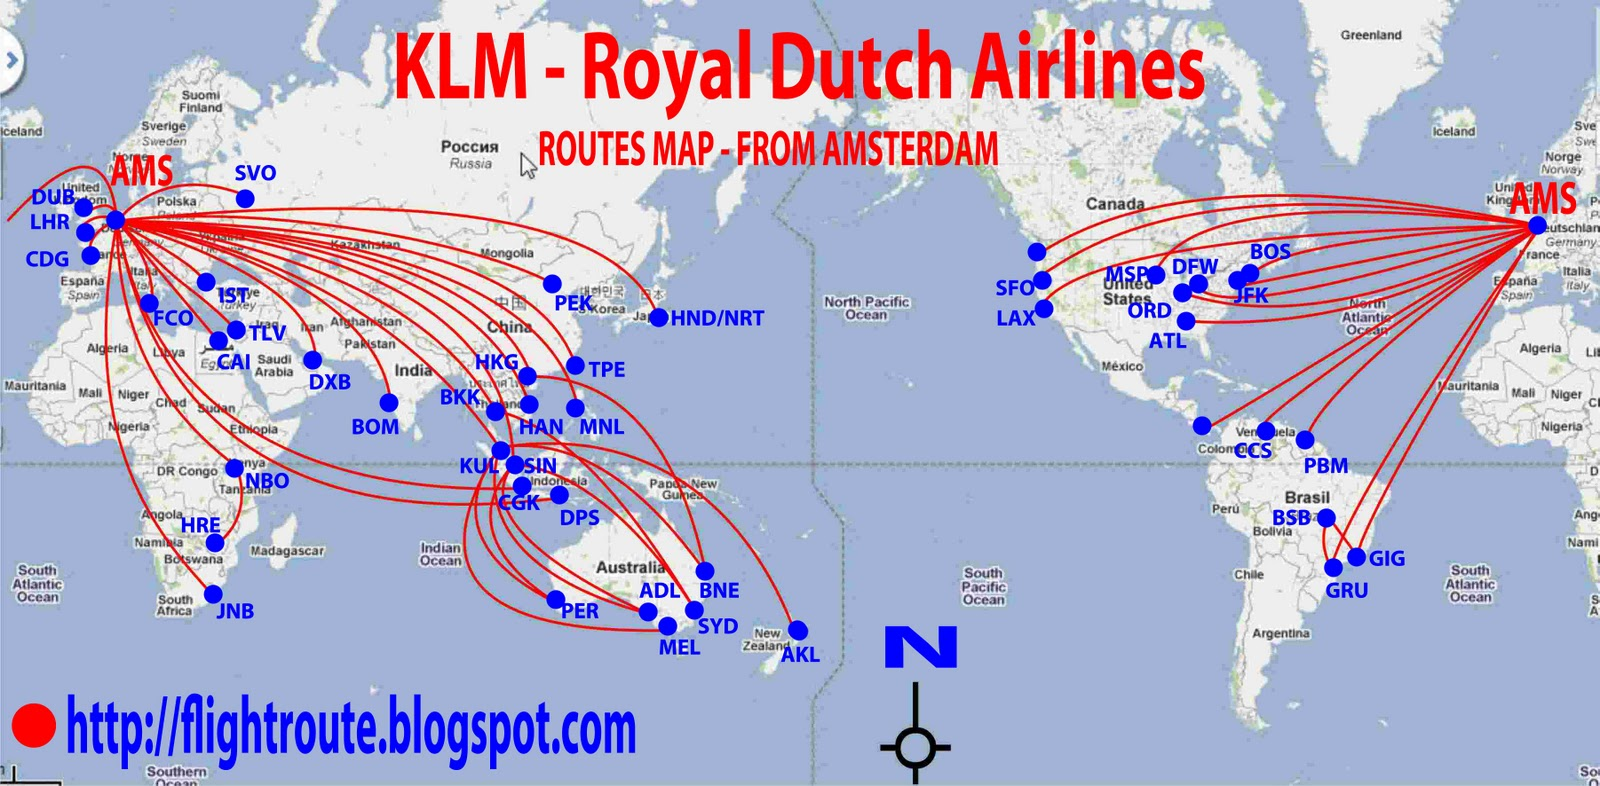 singapore airlines route map with Klm Airlines Flights on Haneda Airport Reviews E2 80 8B E2 80 8B moreover Chennai further Hotel In Charles De Gualle together with Sri Lankan Airline moreover Singapore Airlines First Boeing 787 10 To Serve Osaka.